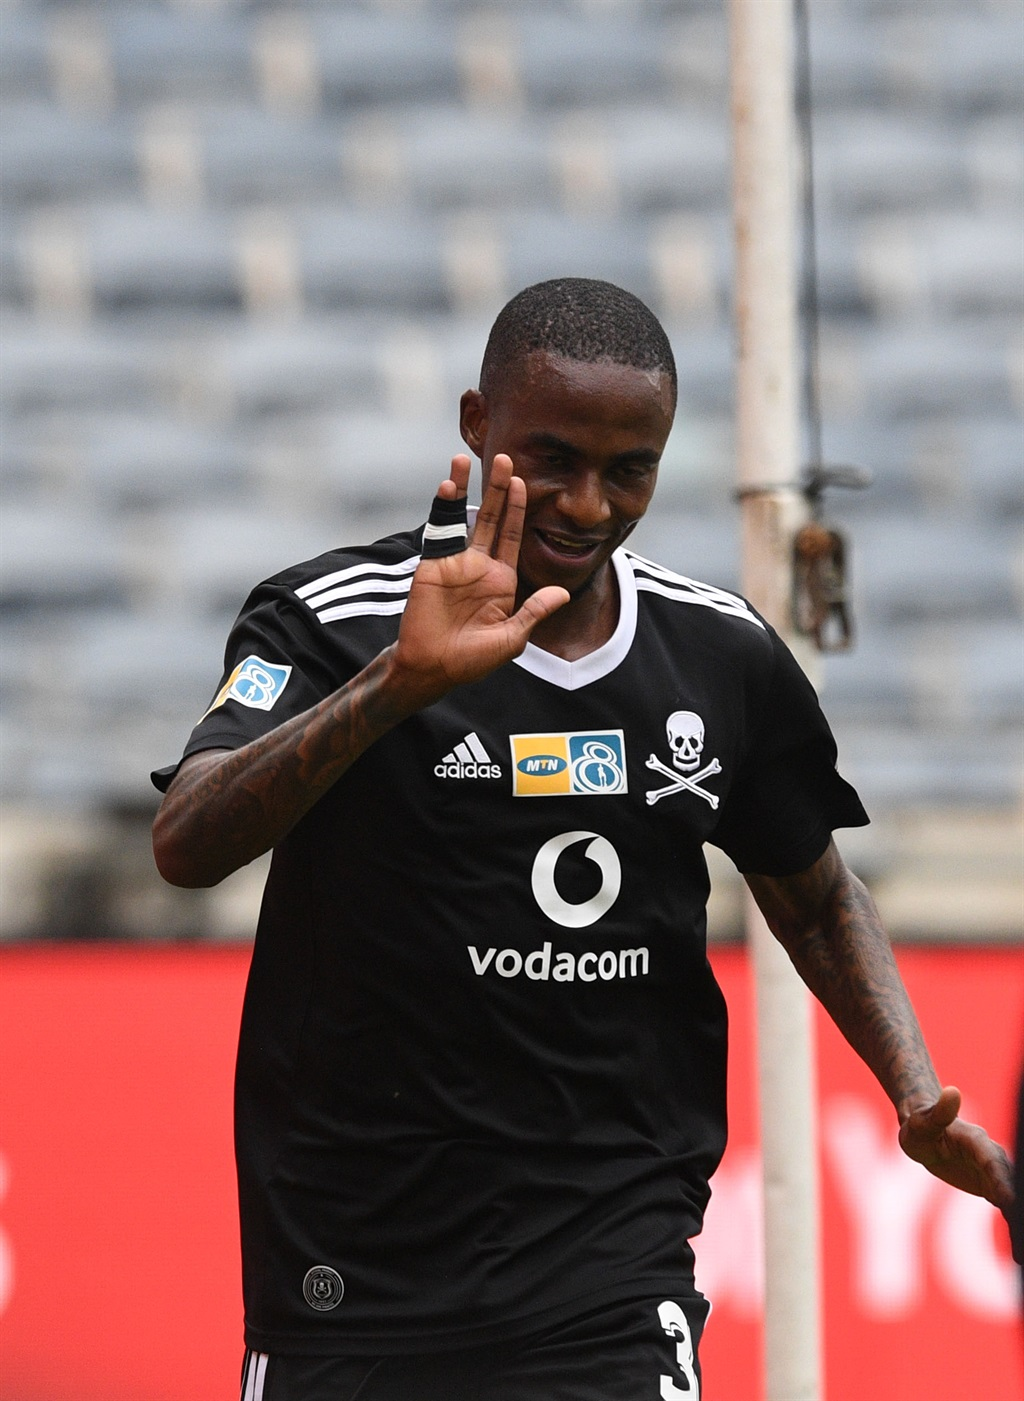 Orlando pirates are winless in their last three matches while maritzburg. I've wanted to win trophies - Lorch